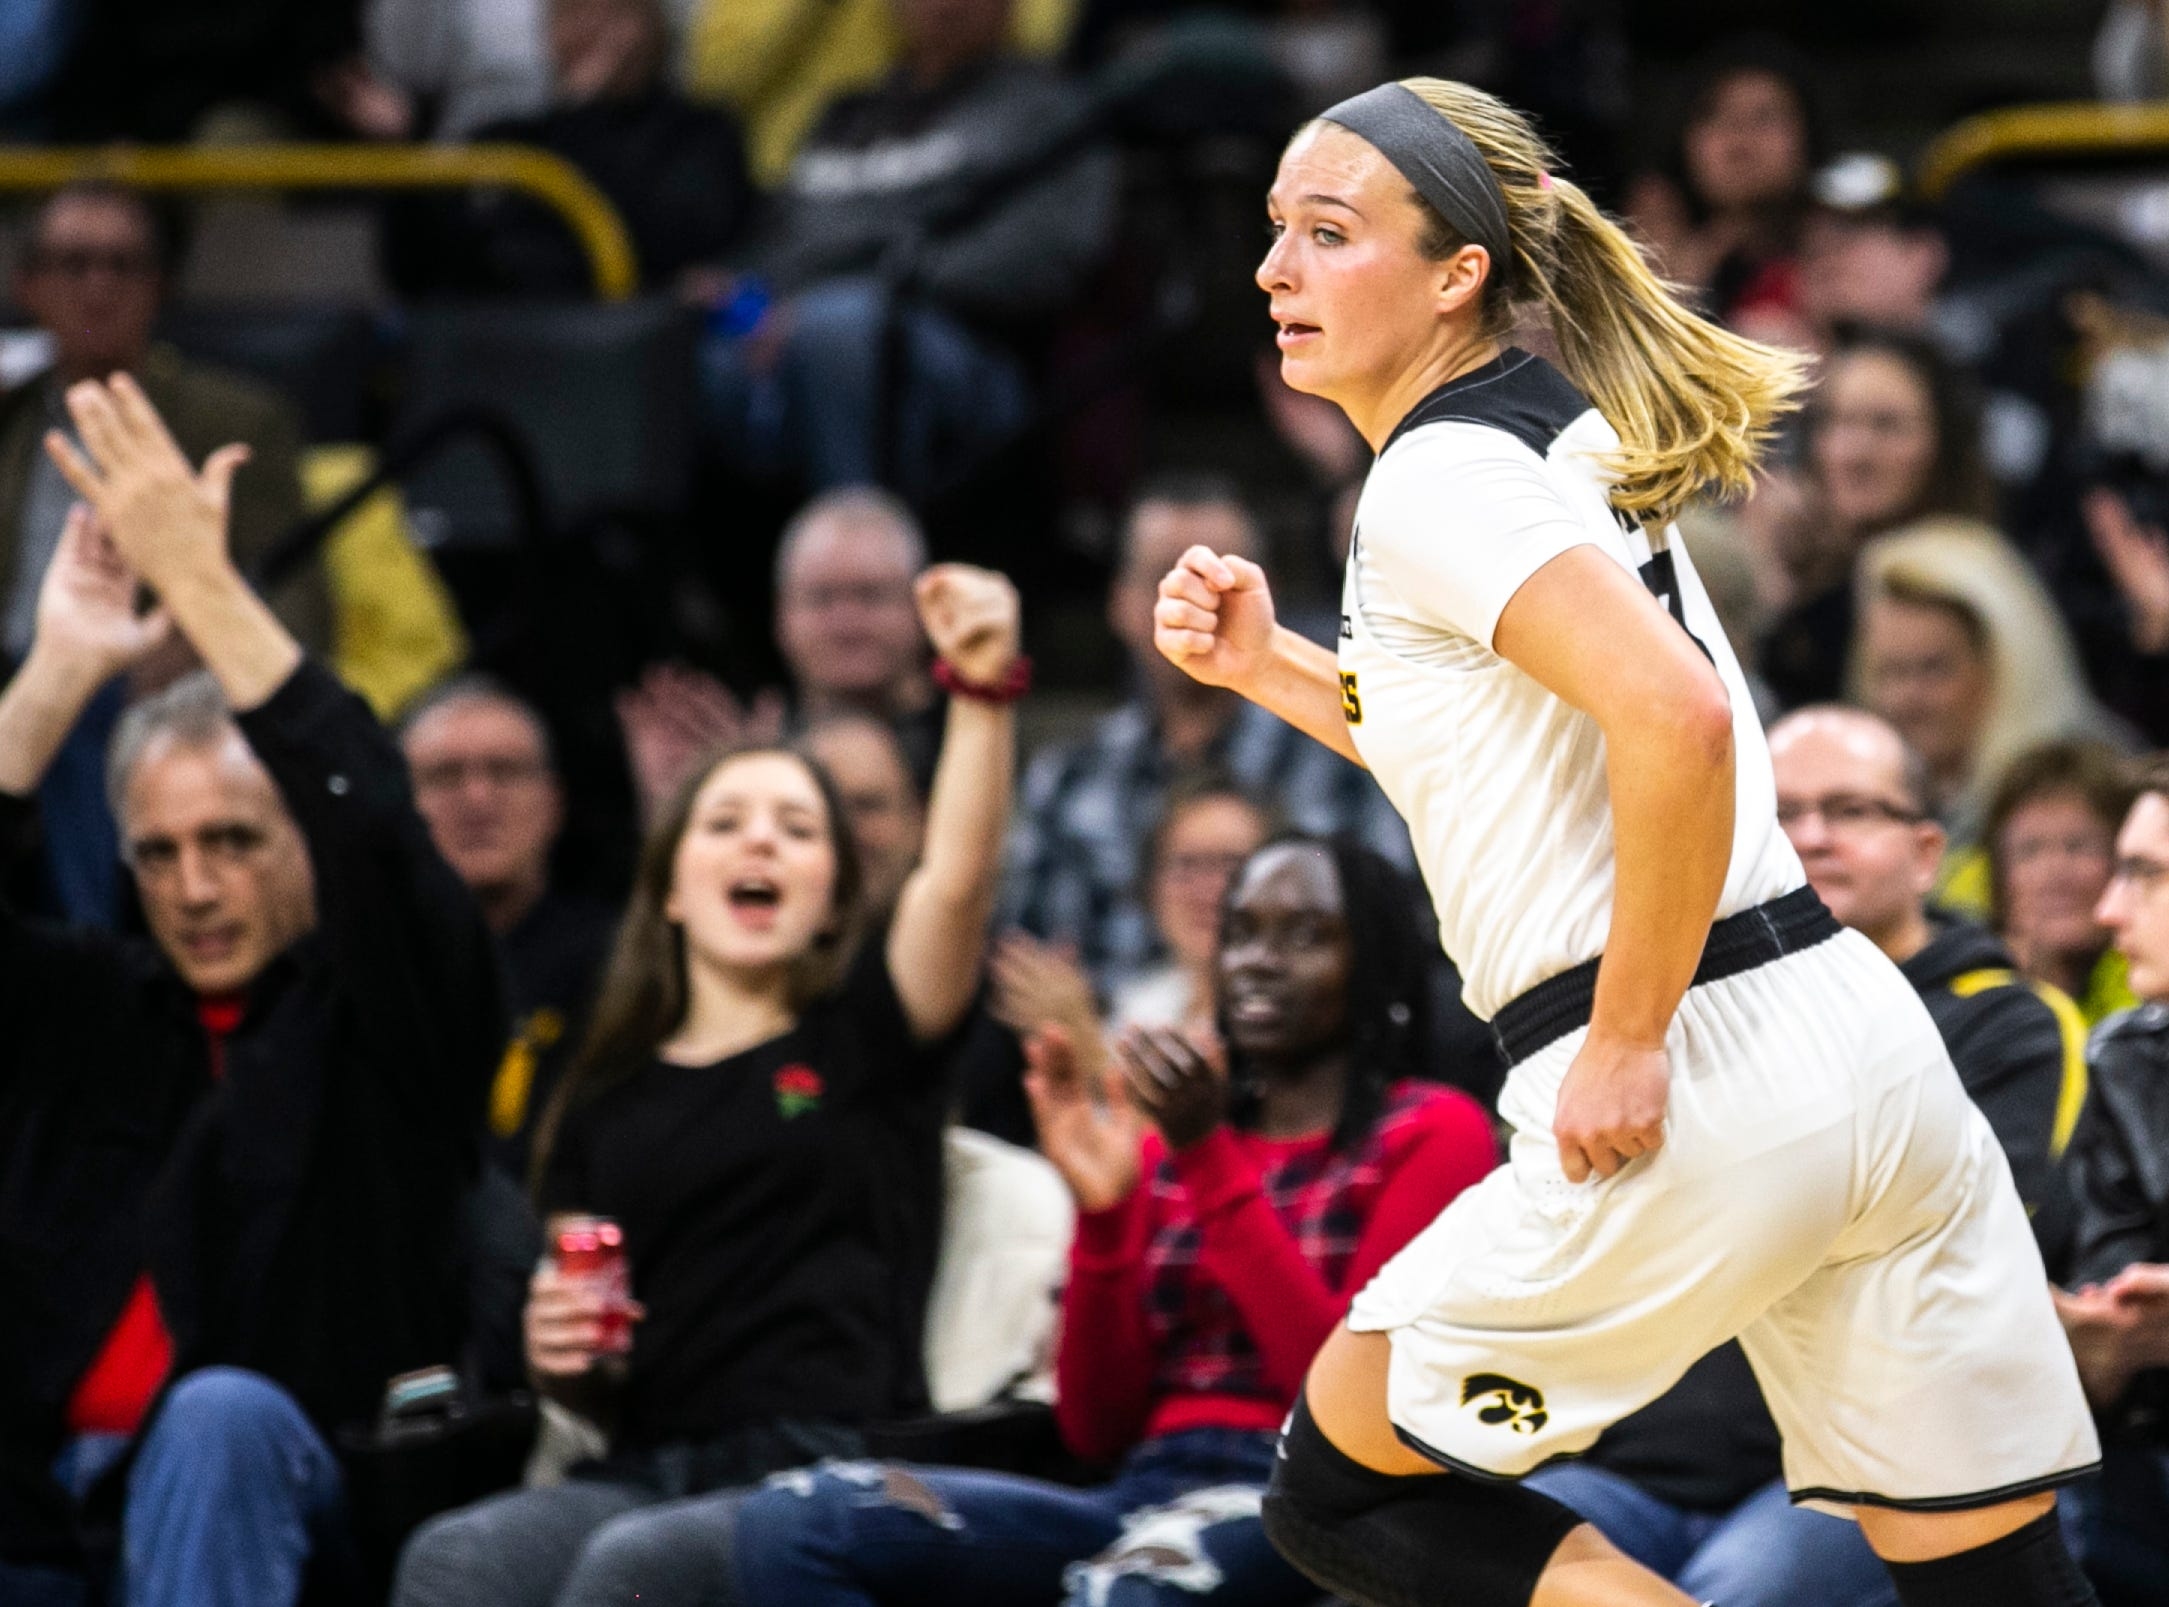 Iowa guard Makenzie Meyer (3) celebrates after making a layup during a NCAA Big Ten Conference women's basketball game on Sunday, Jan. 27, 2019, at Carver-Hawkeye Arena in Iowa City, Iowa.